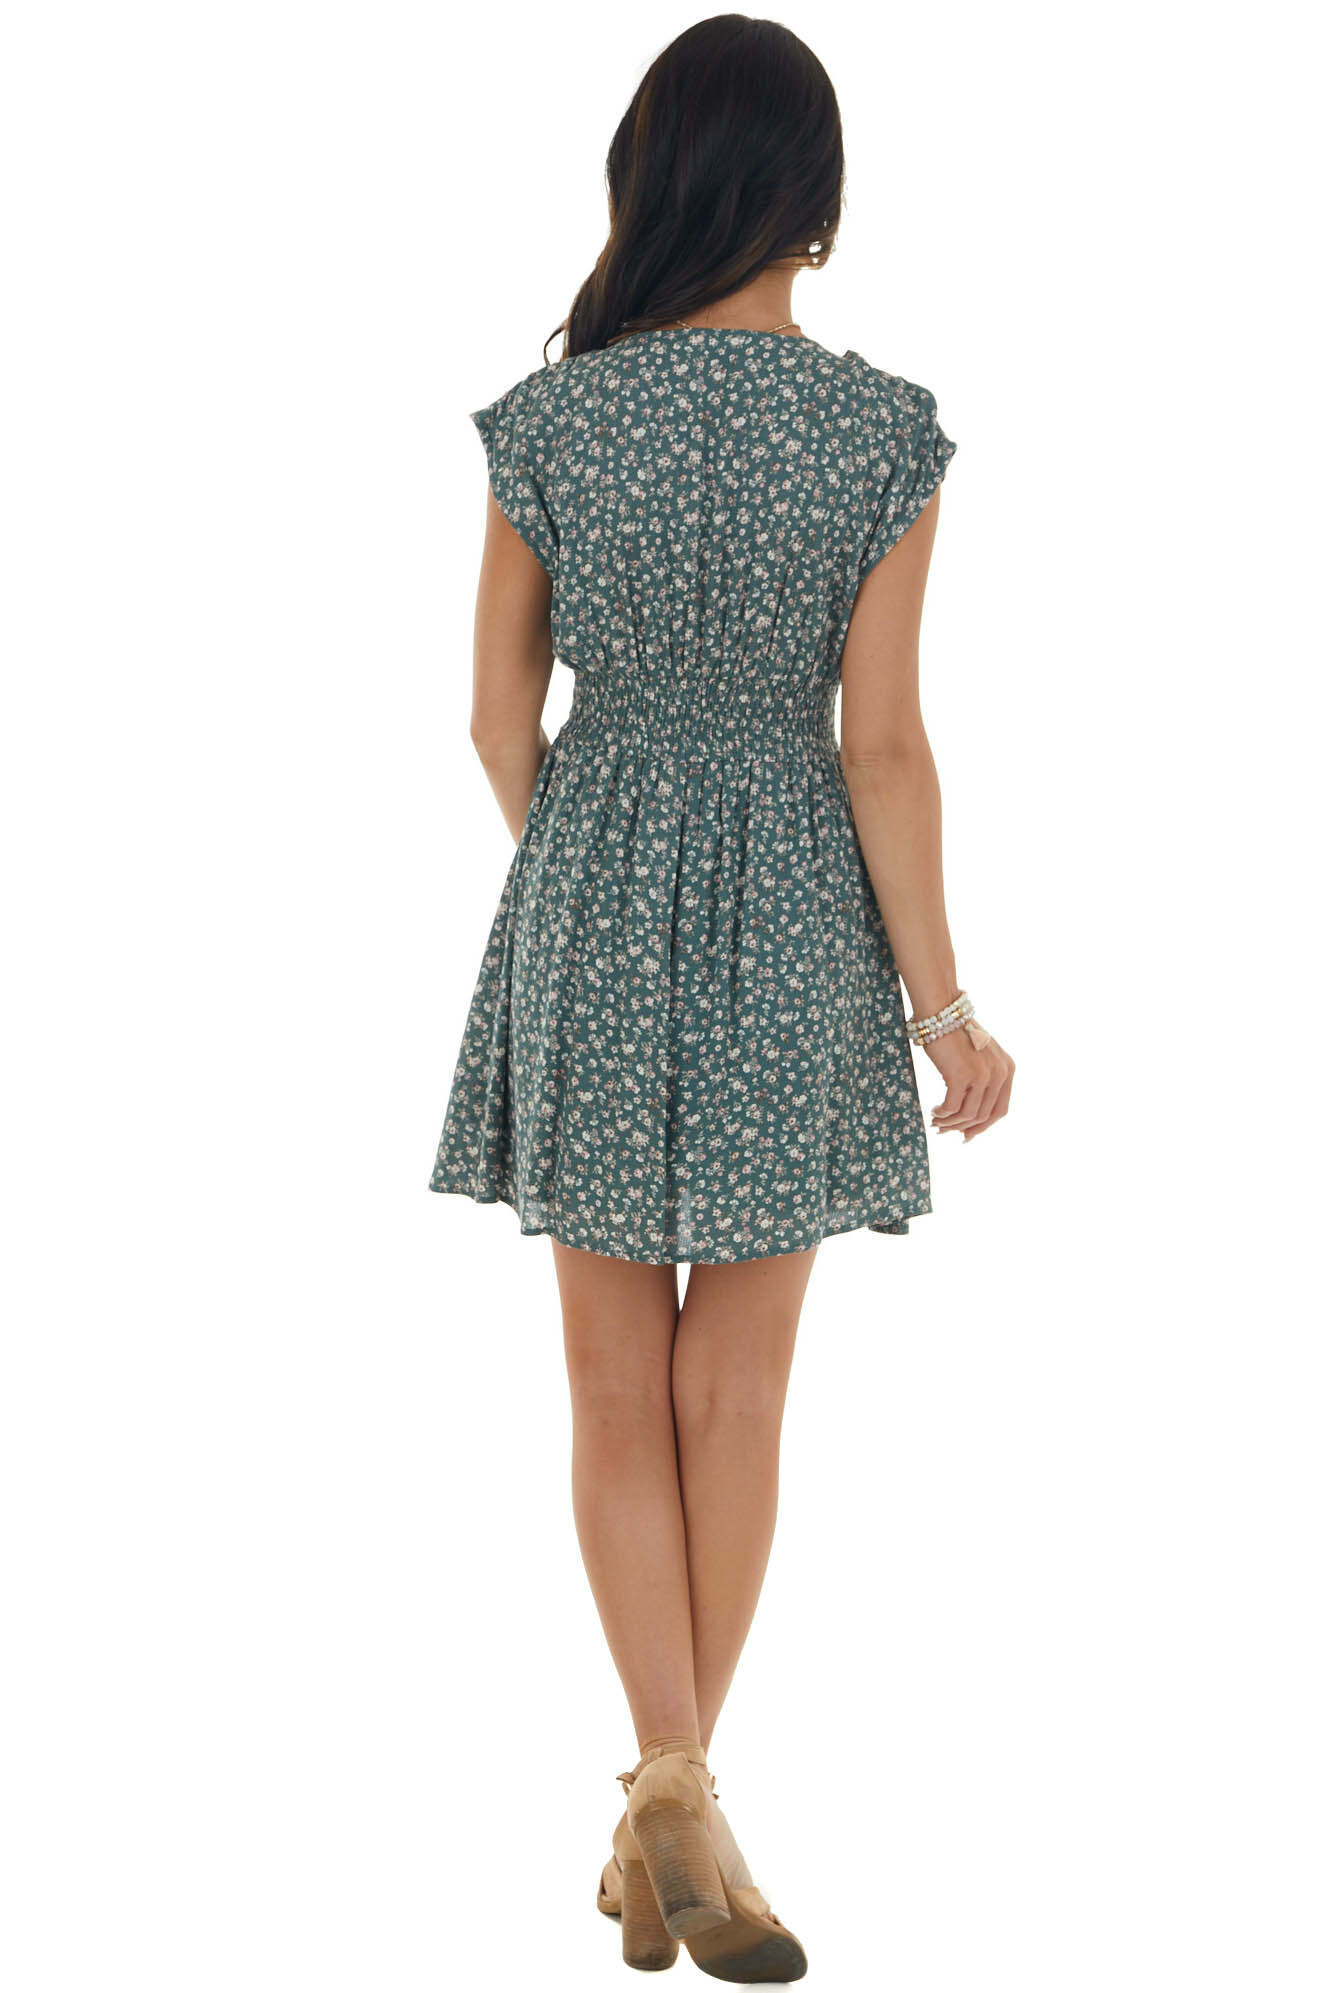 Pine Green Ditsy Floral Button Up Mini Dress